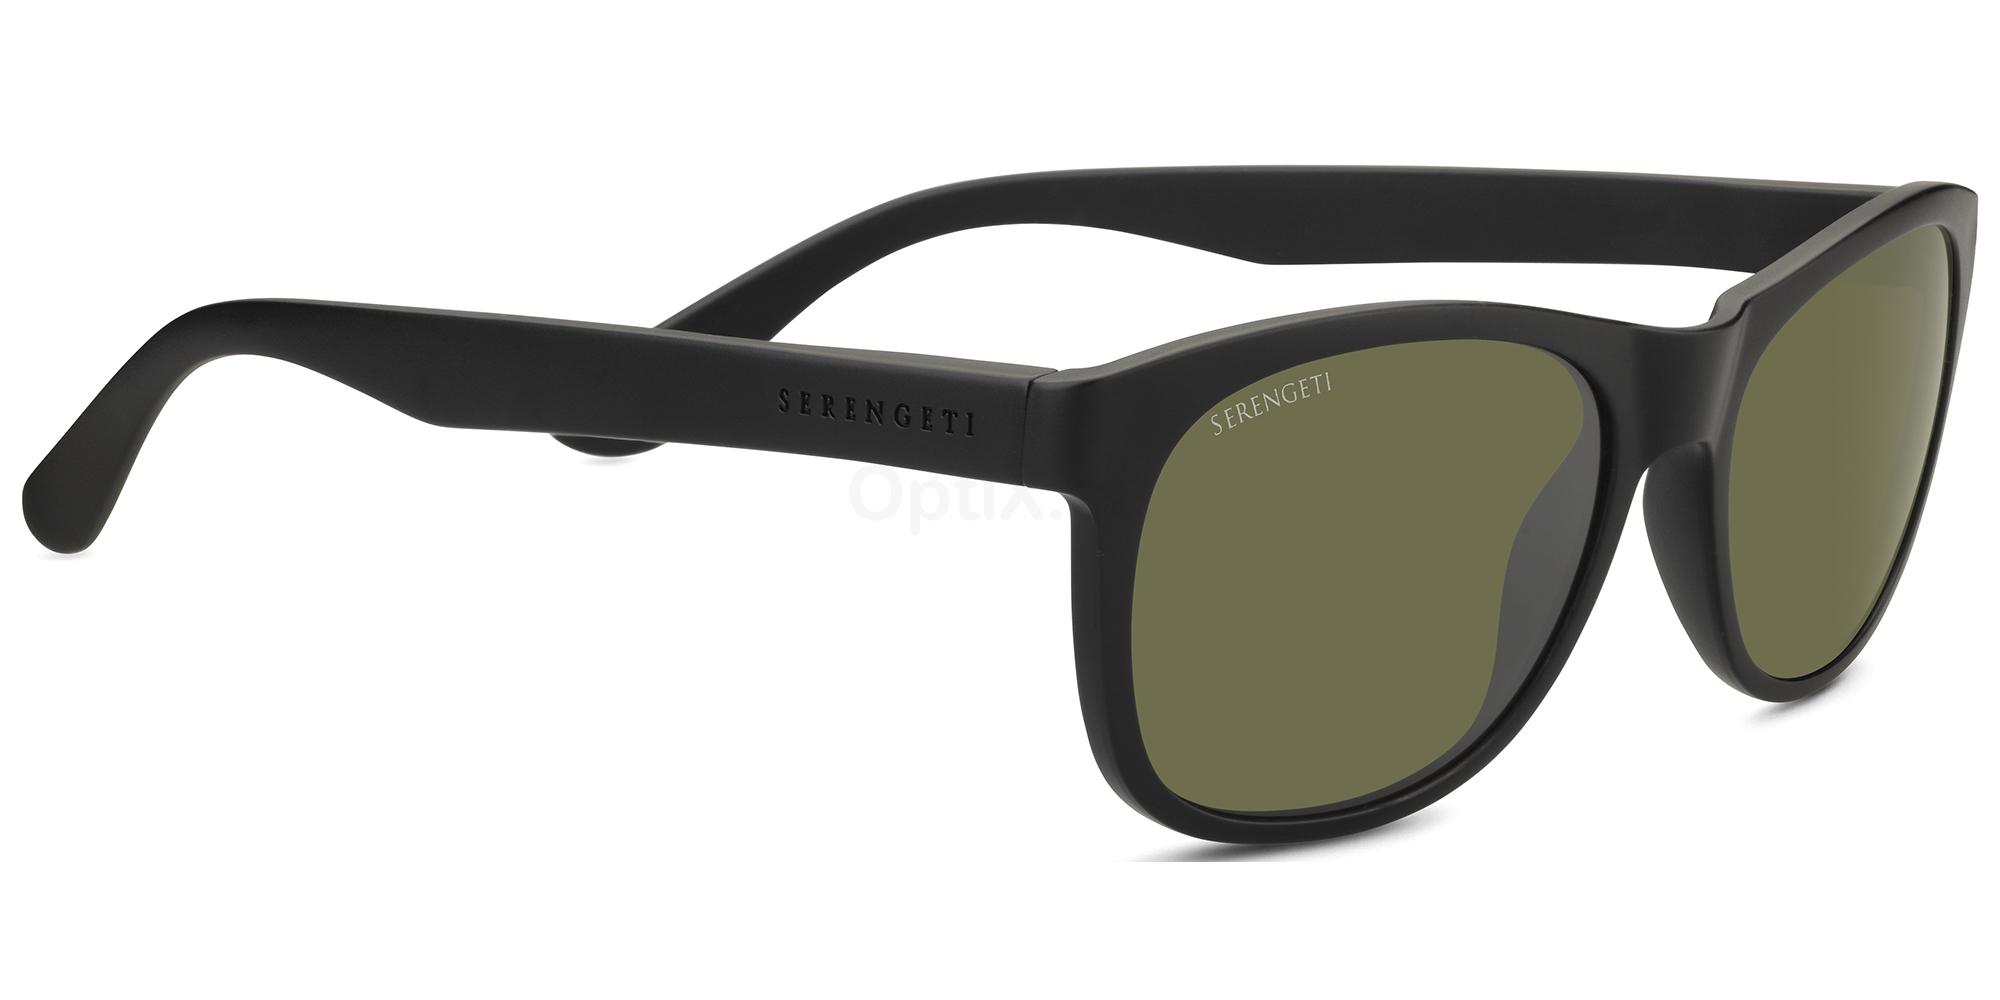 8667 ANTEO Sunglasses, Serengeti